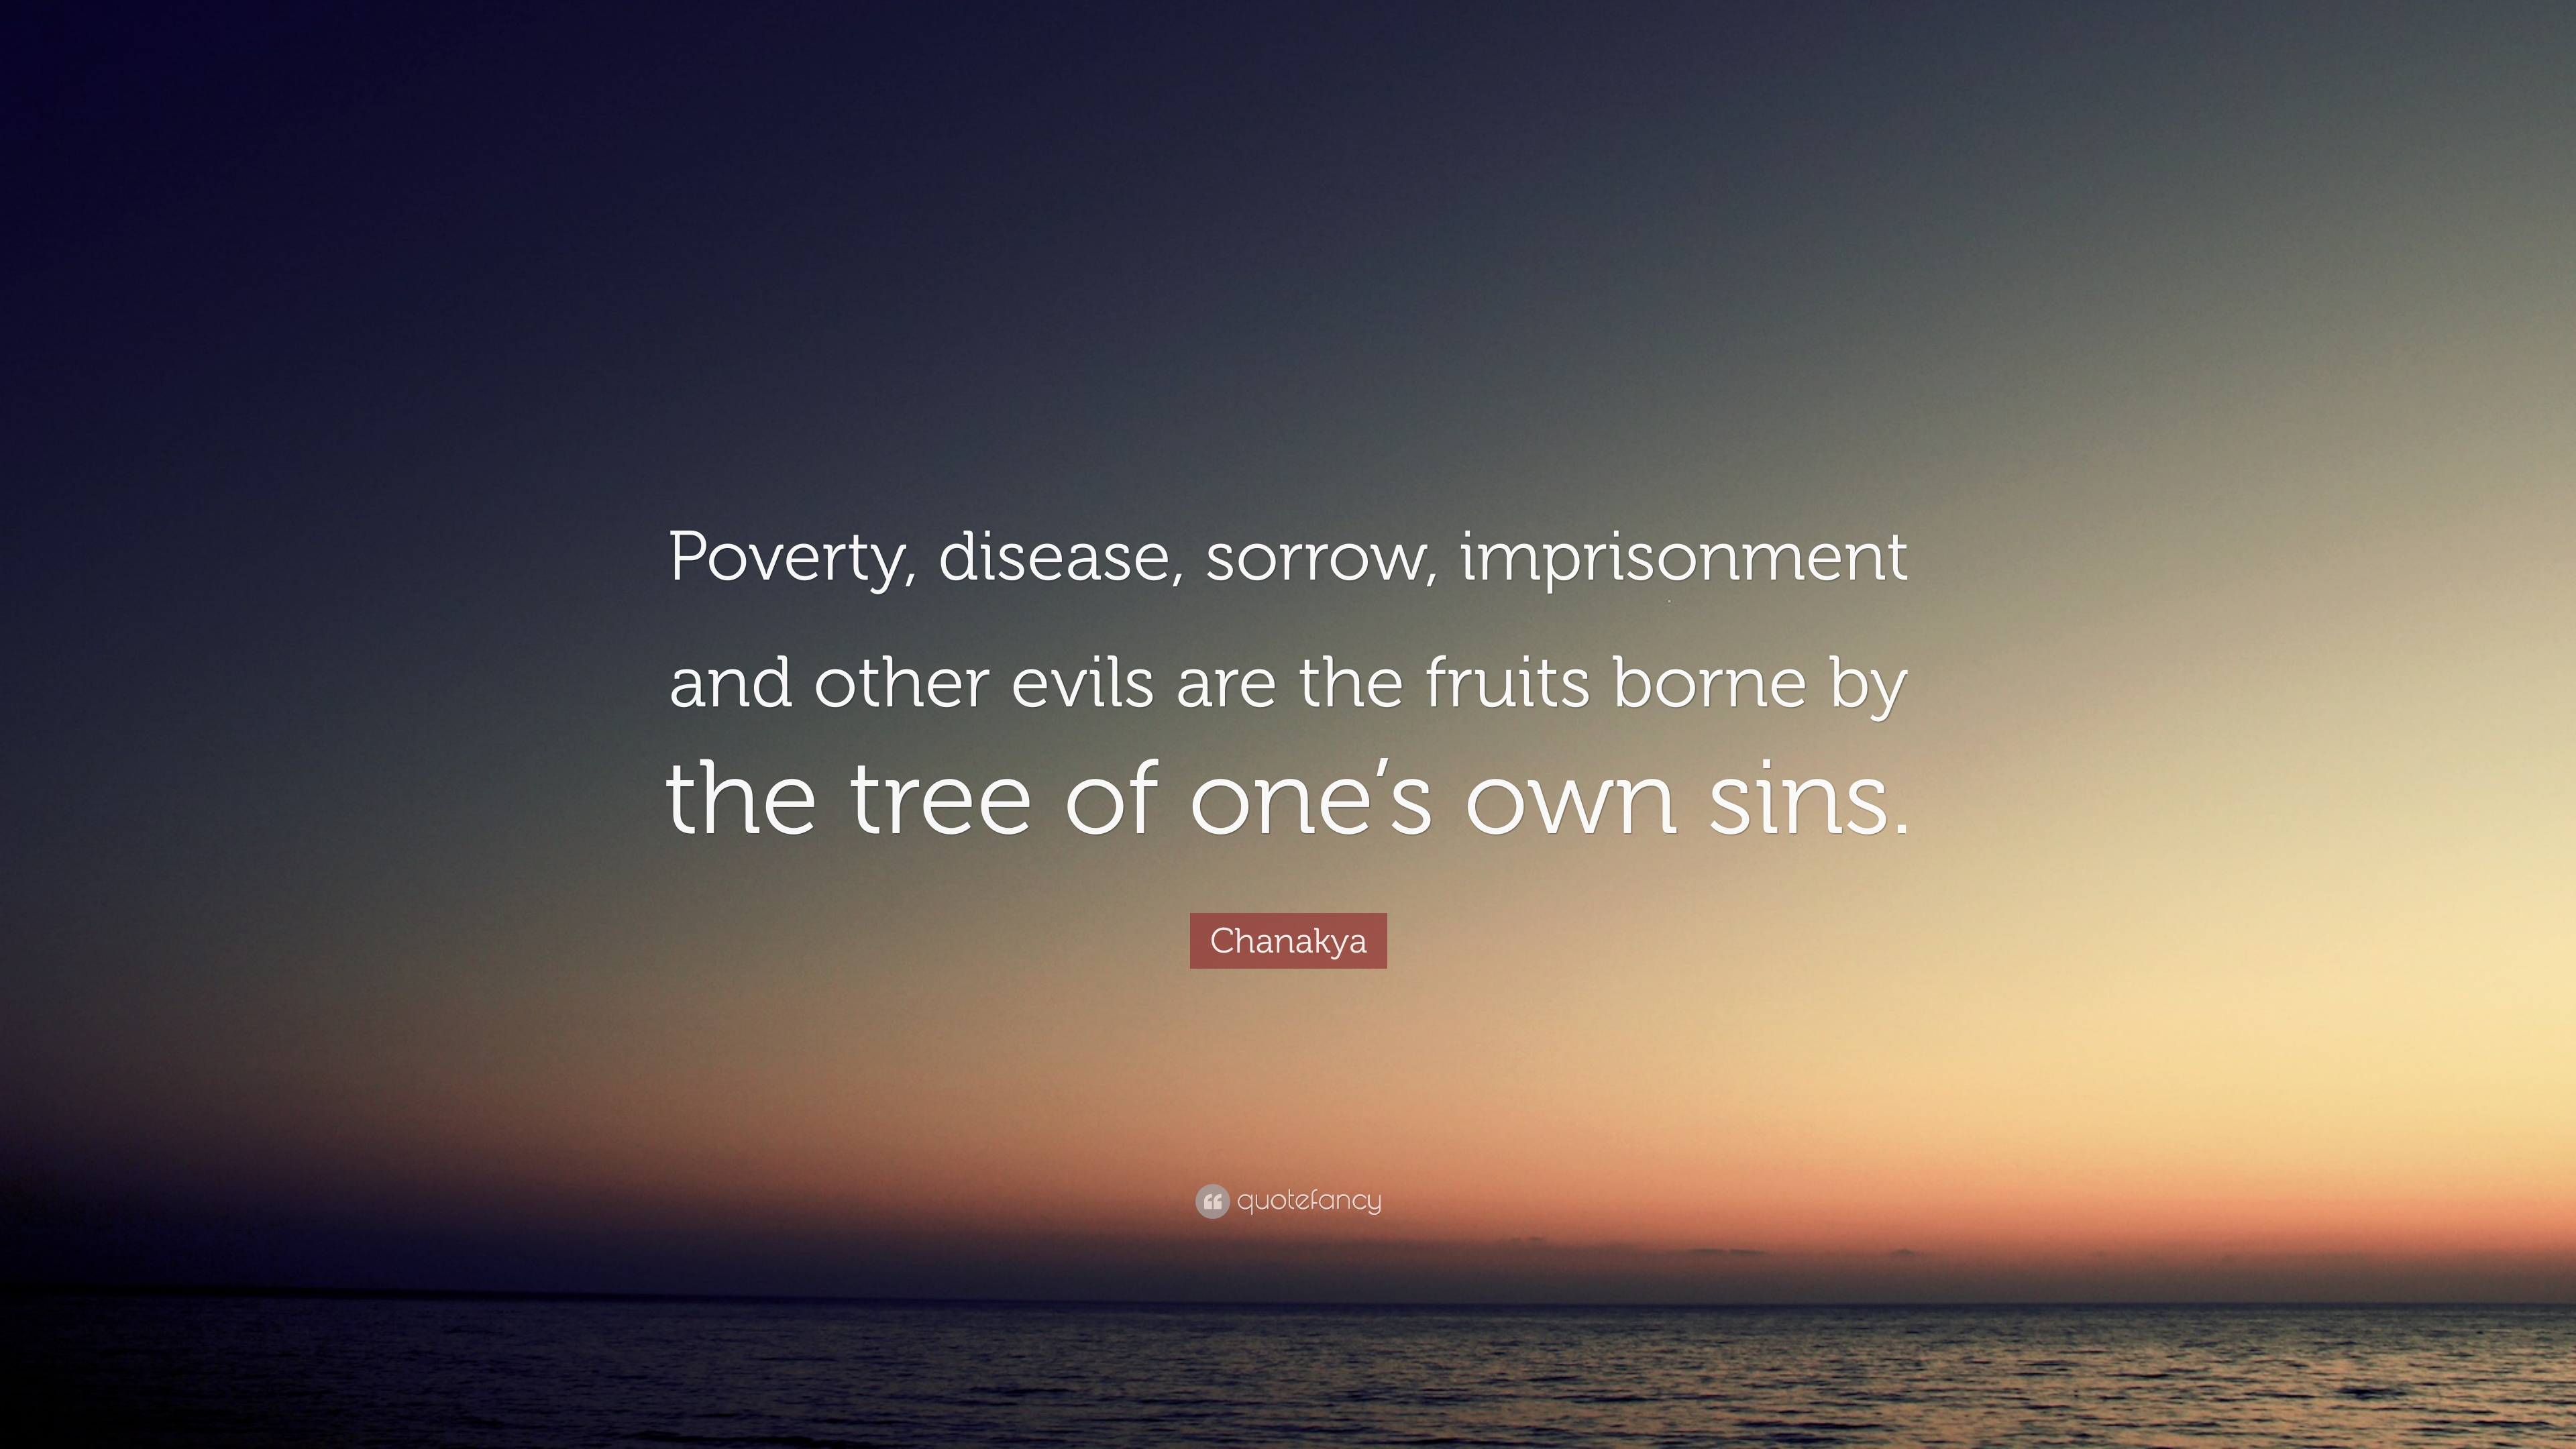 Quotes About Poverty | Chanakya Quote Poverty Disease Sorrow Imprisonment And Other